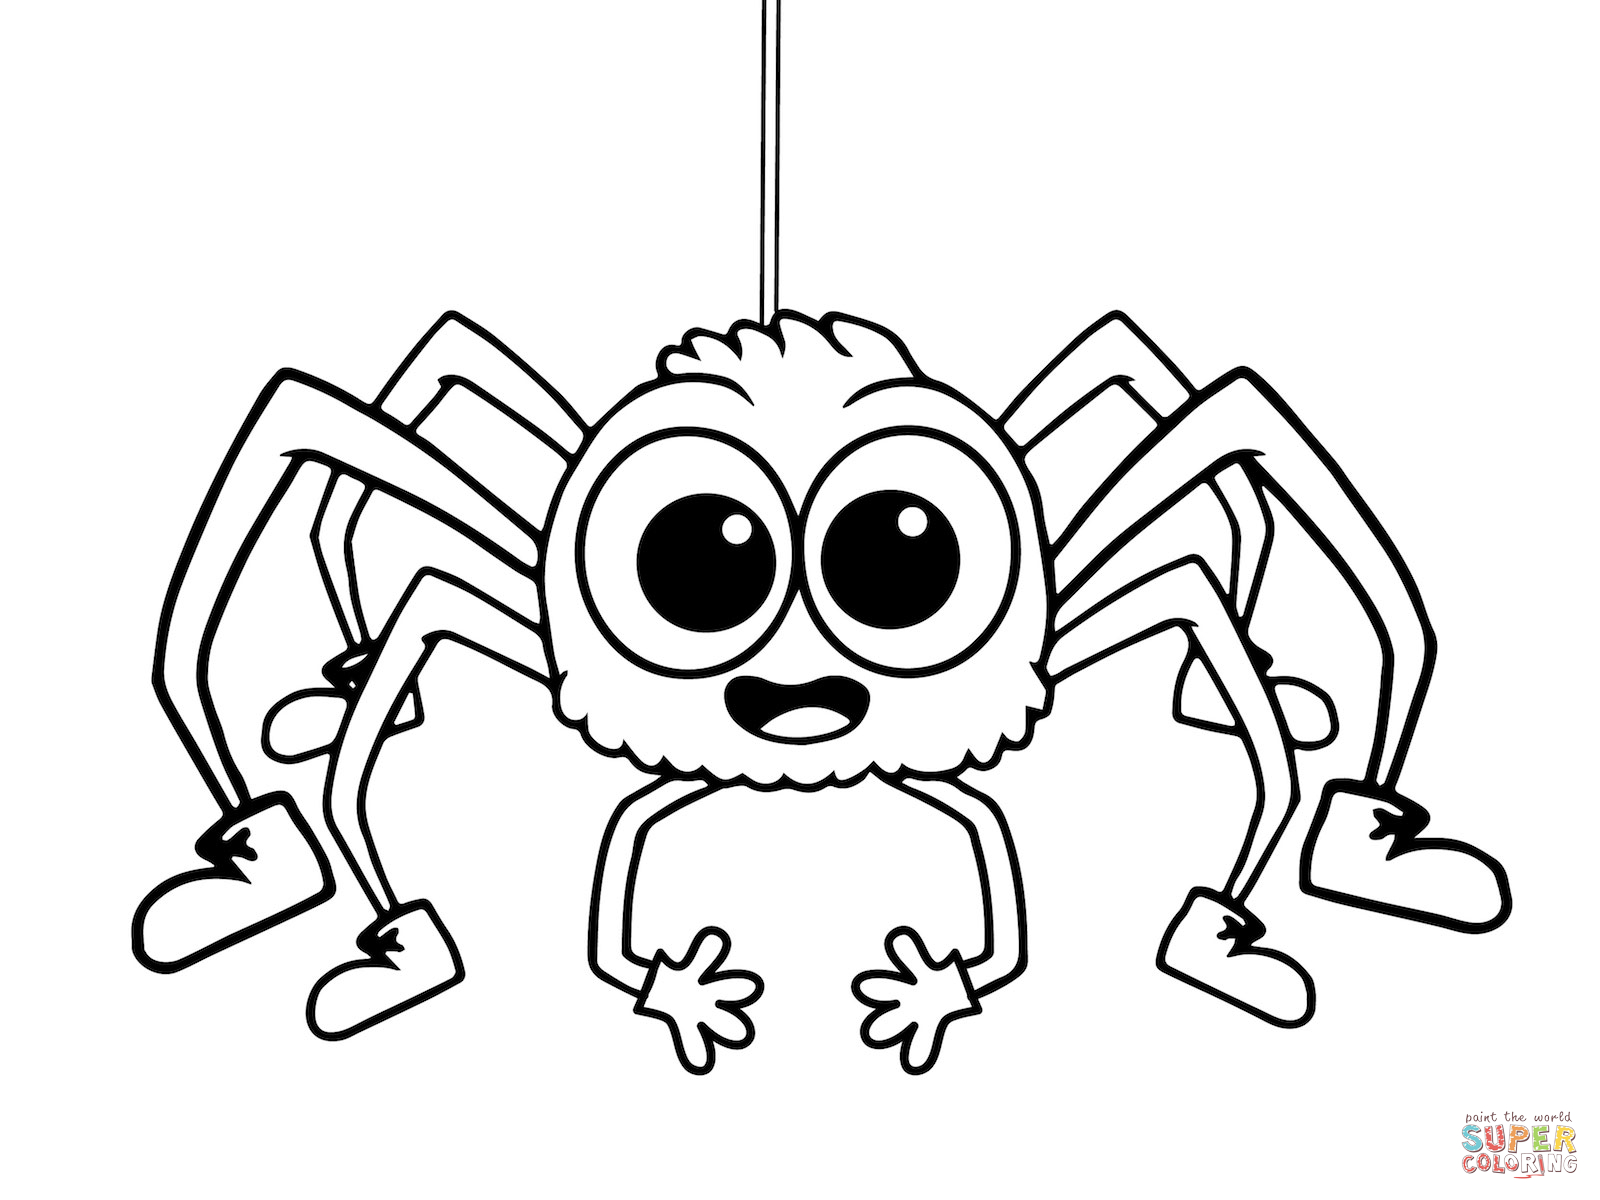 1600x1200 Coloring Pages Spiderman Mask Tags Coloring Pages Spider Batman